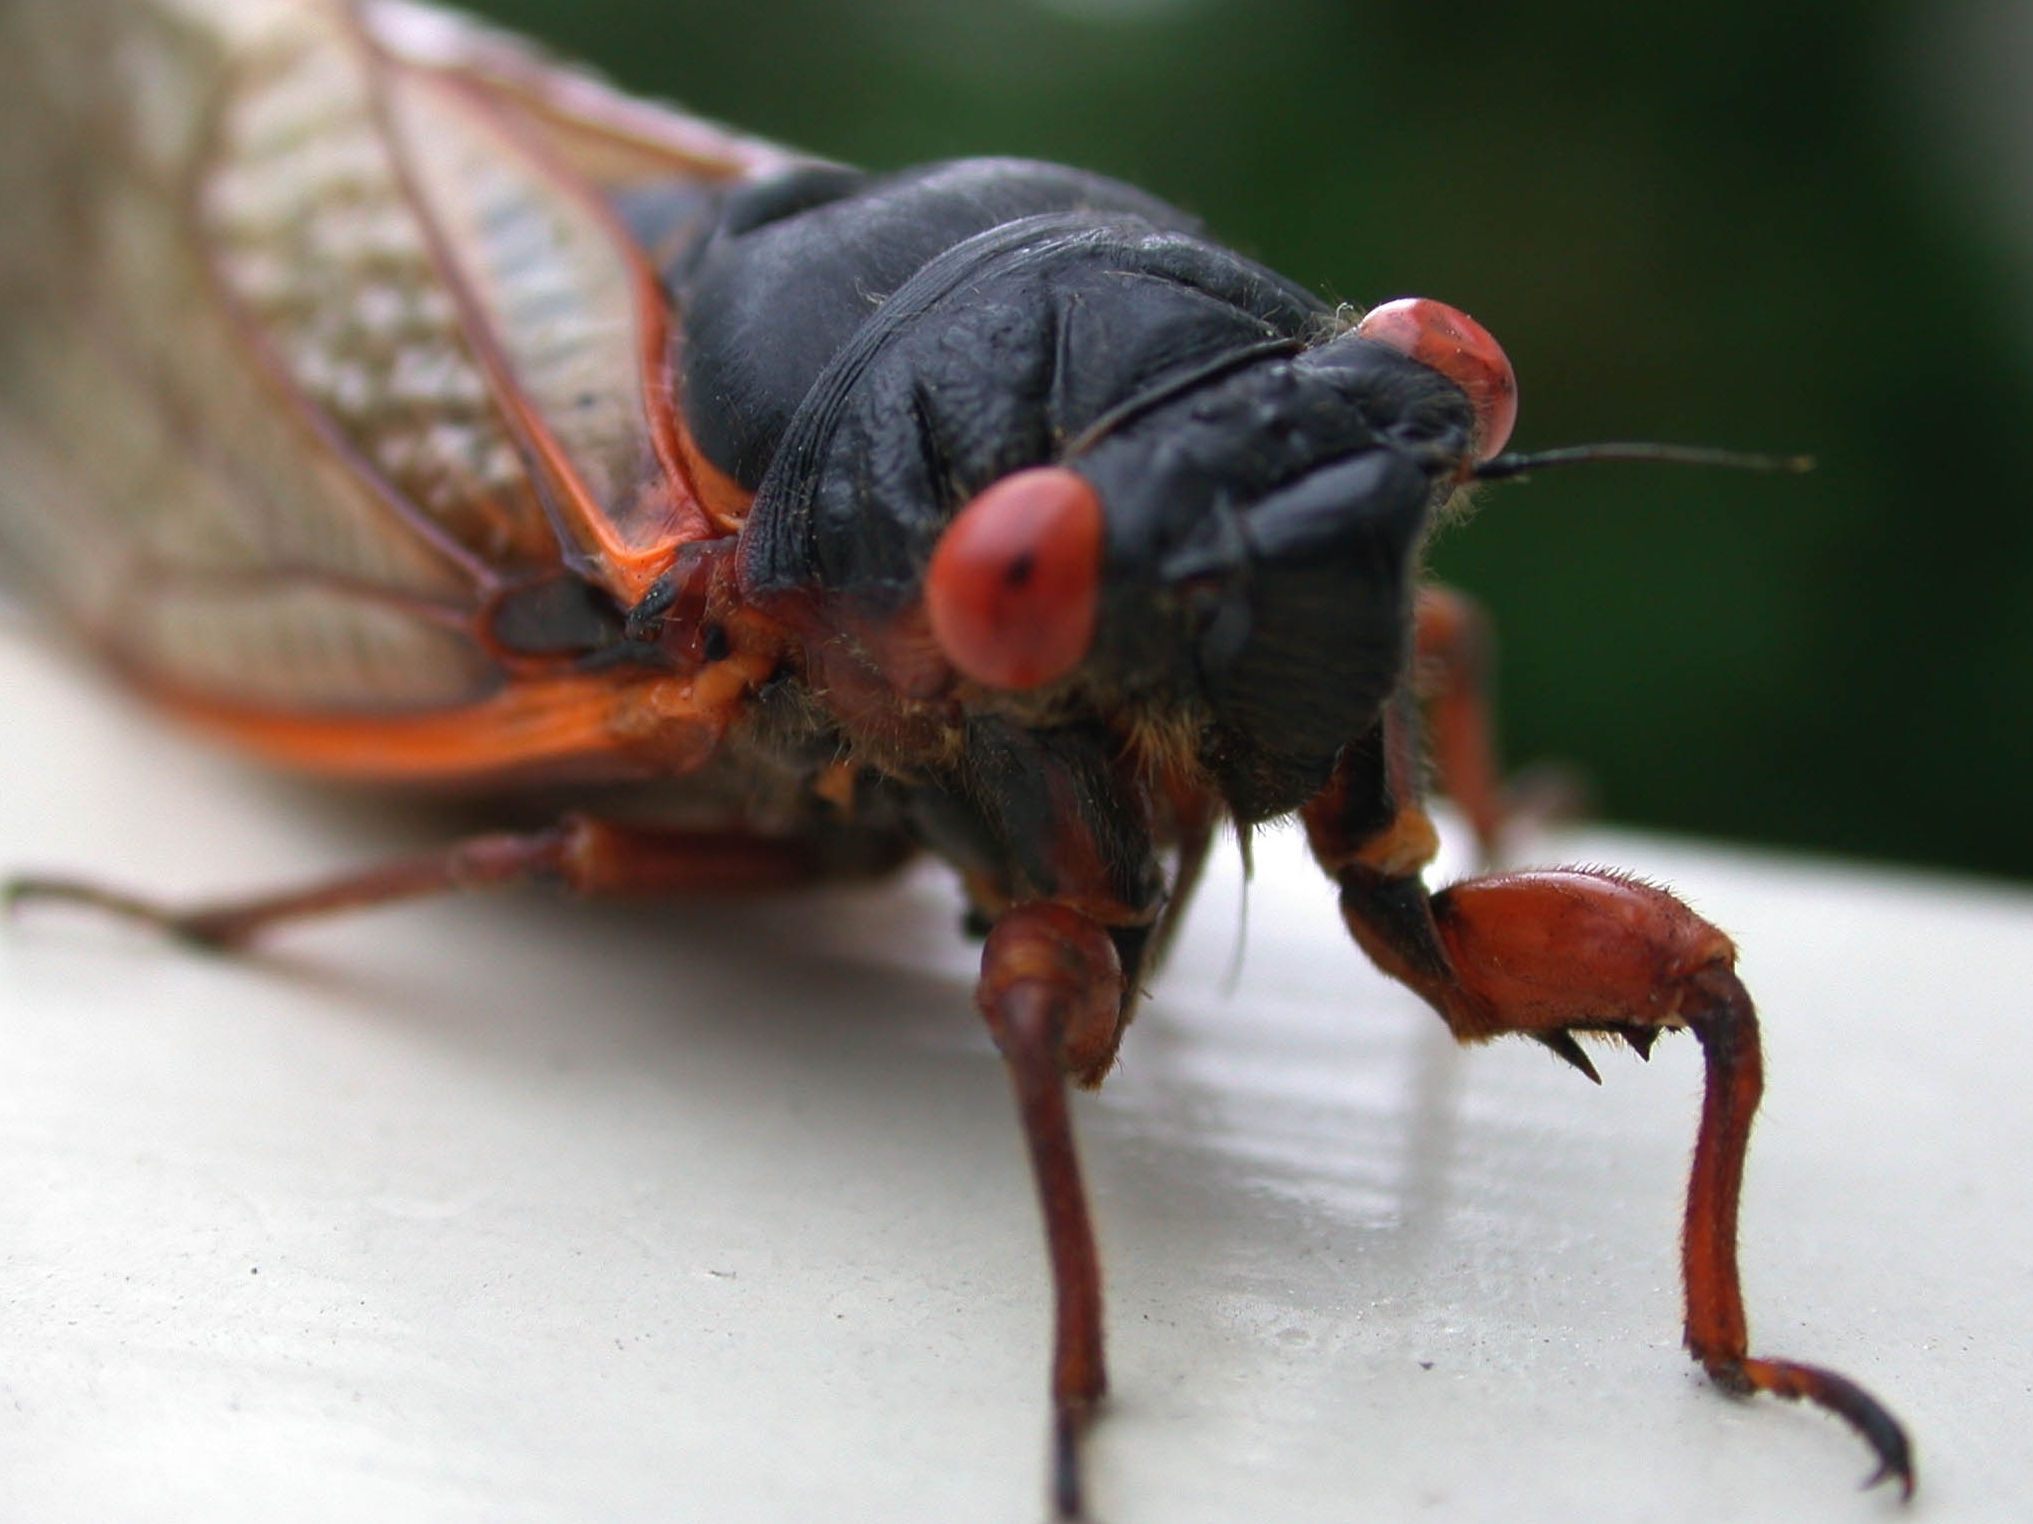 Cooking With Cicadas: No Weirder Than Eating Cheese?